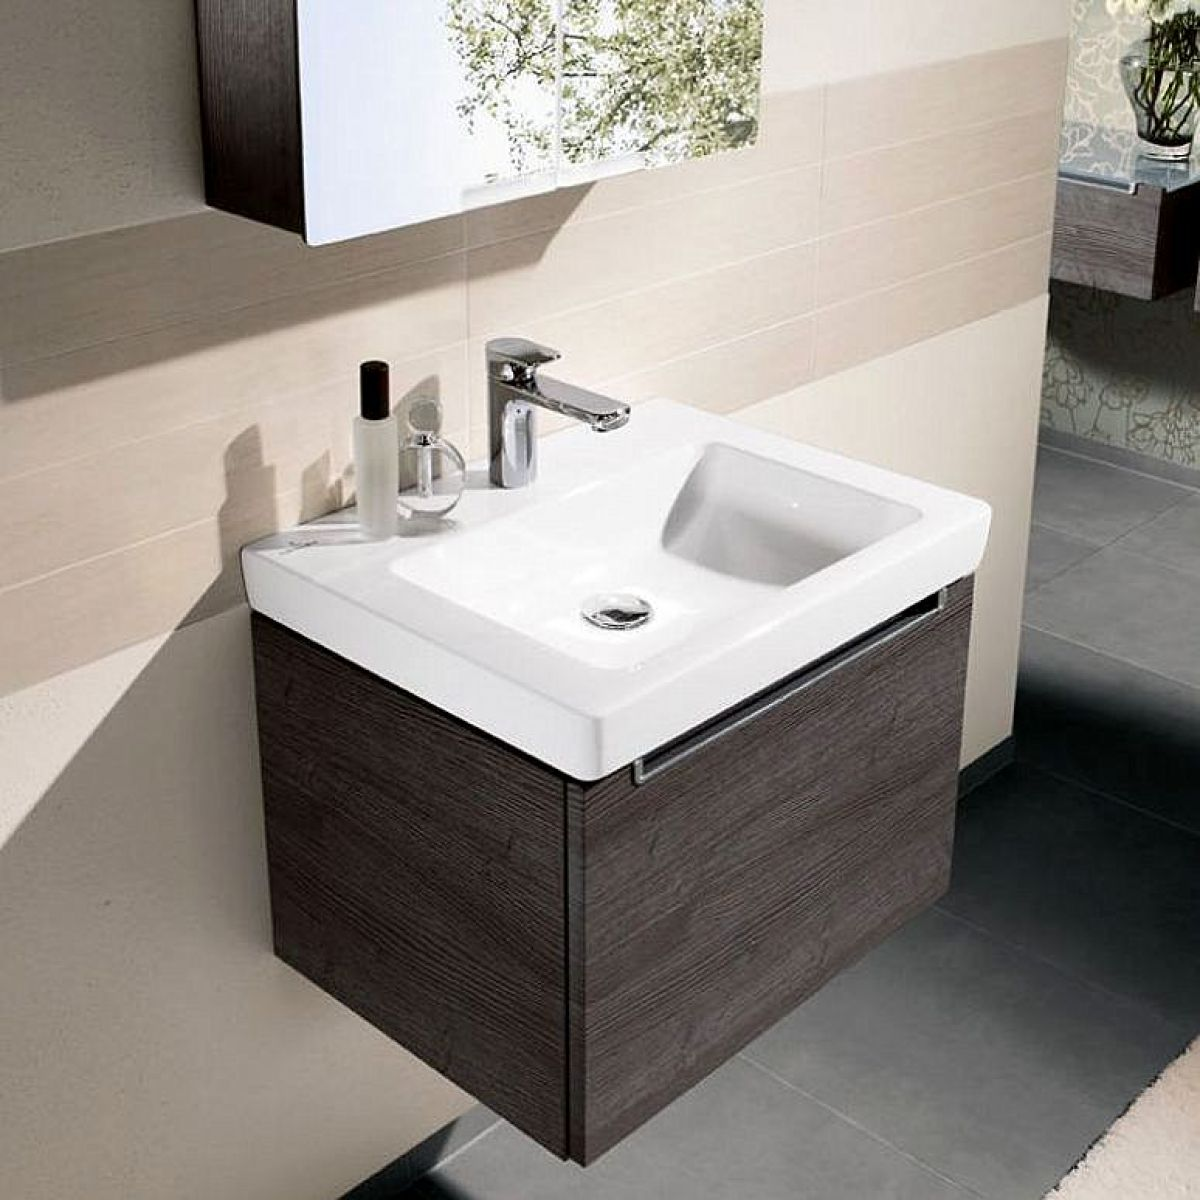 villeroy boch subway 2 0 washbasin vanity unit. Black Bedroom Furniture Sets. Home Design Ideas